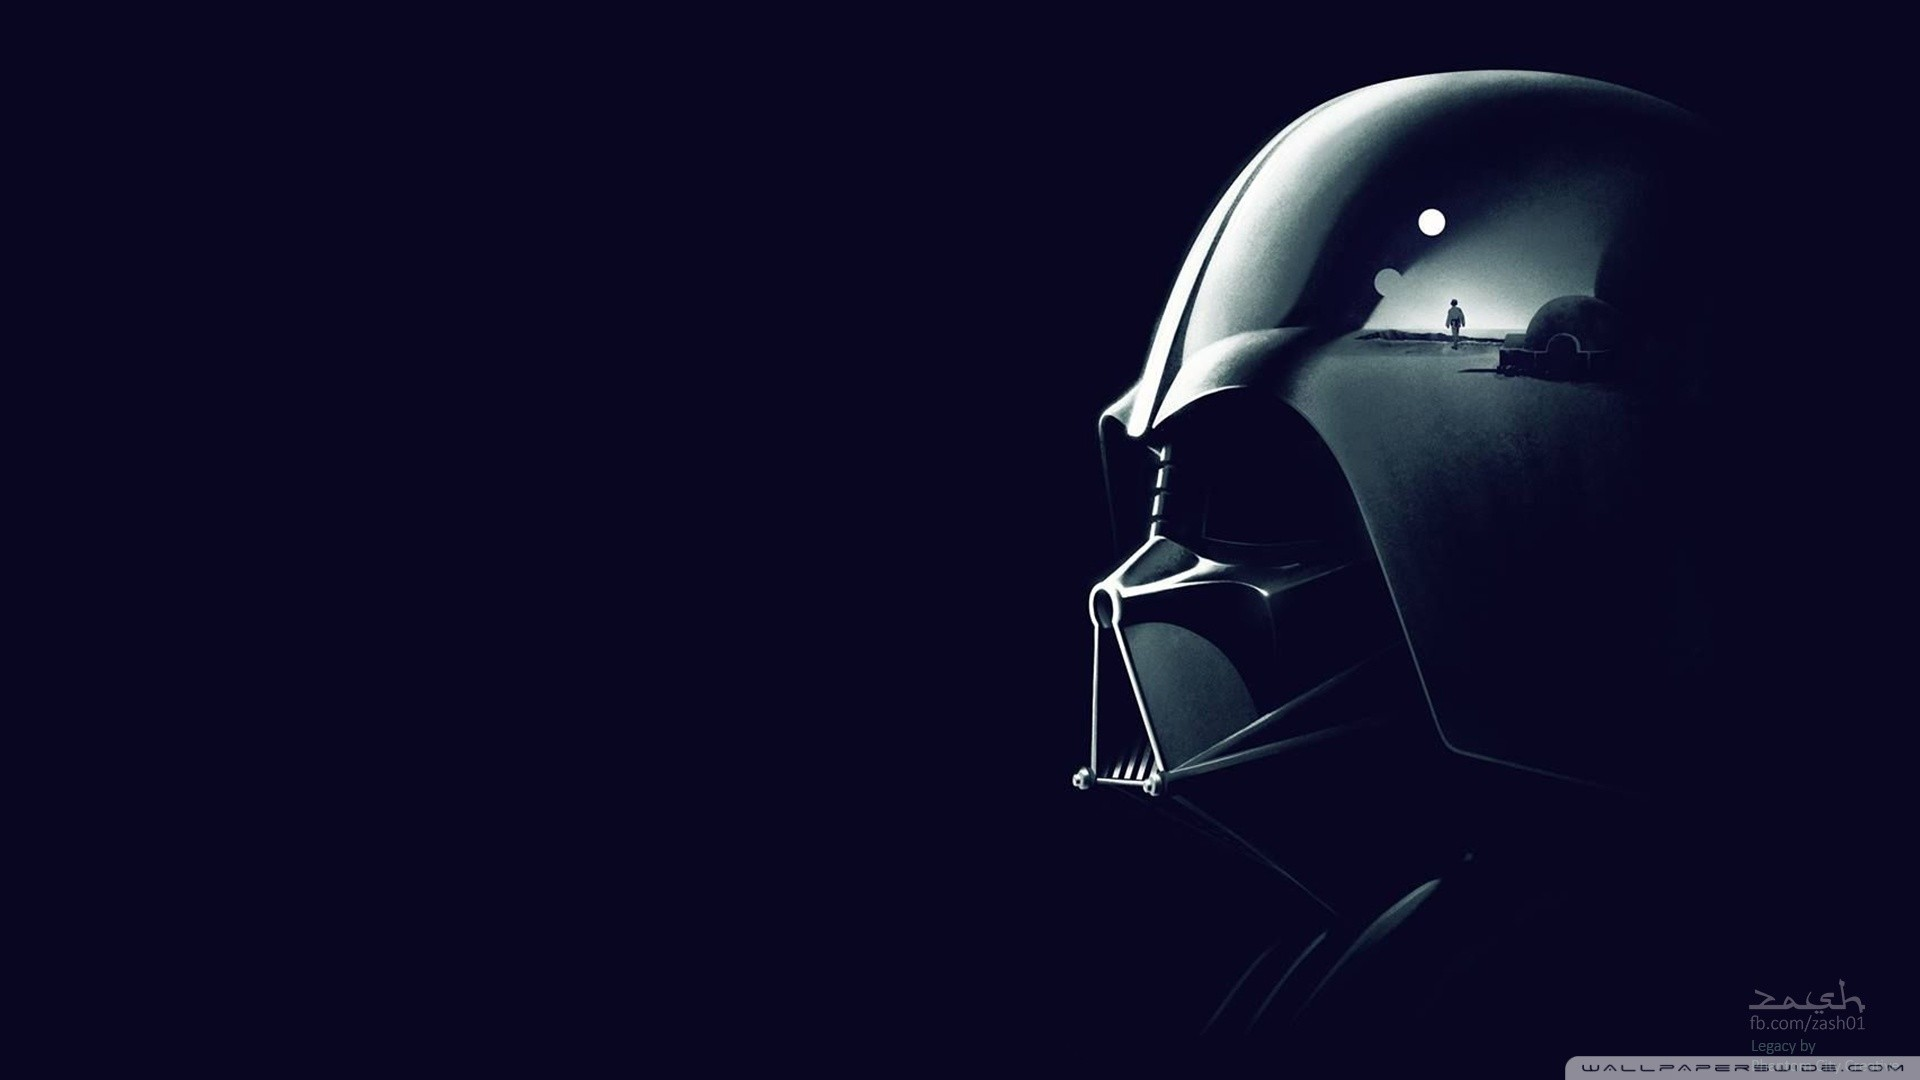 Star Wars HD Backgrounds, Pictures, Images